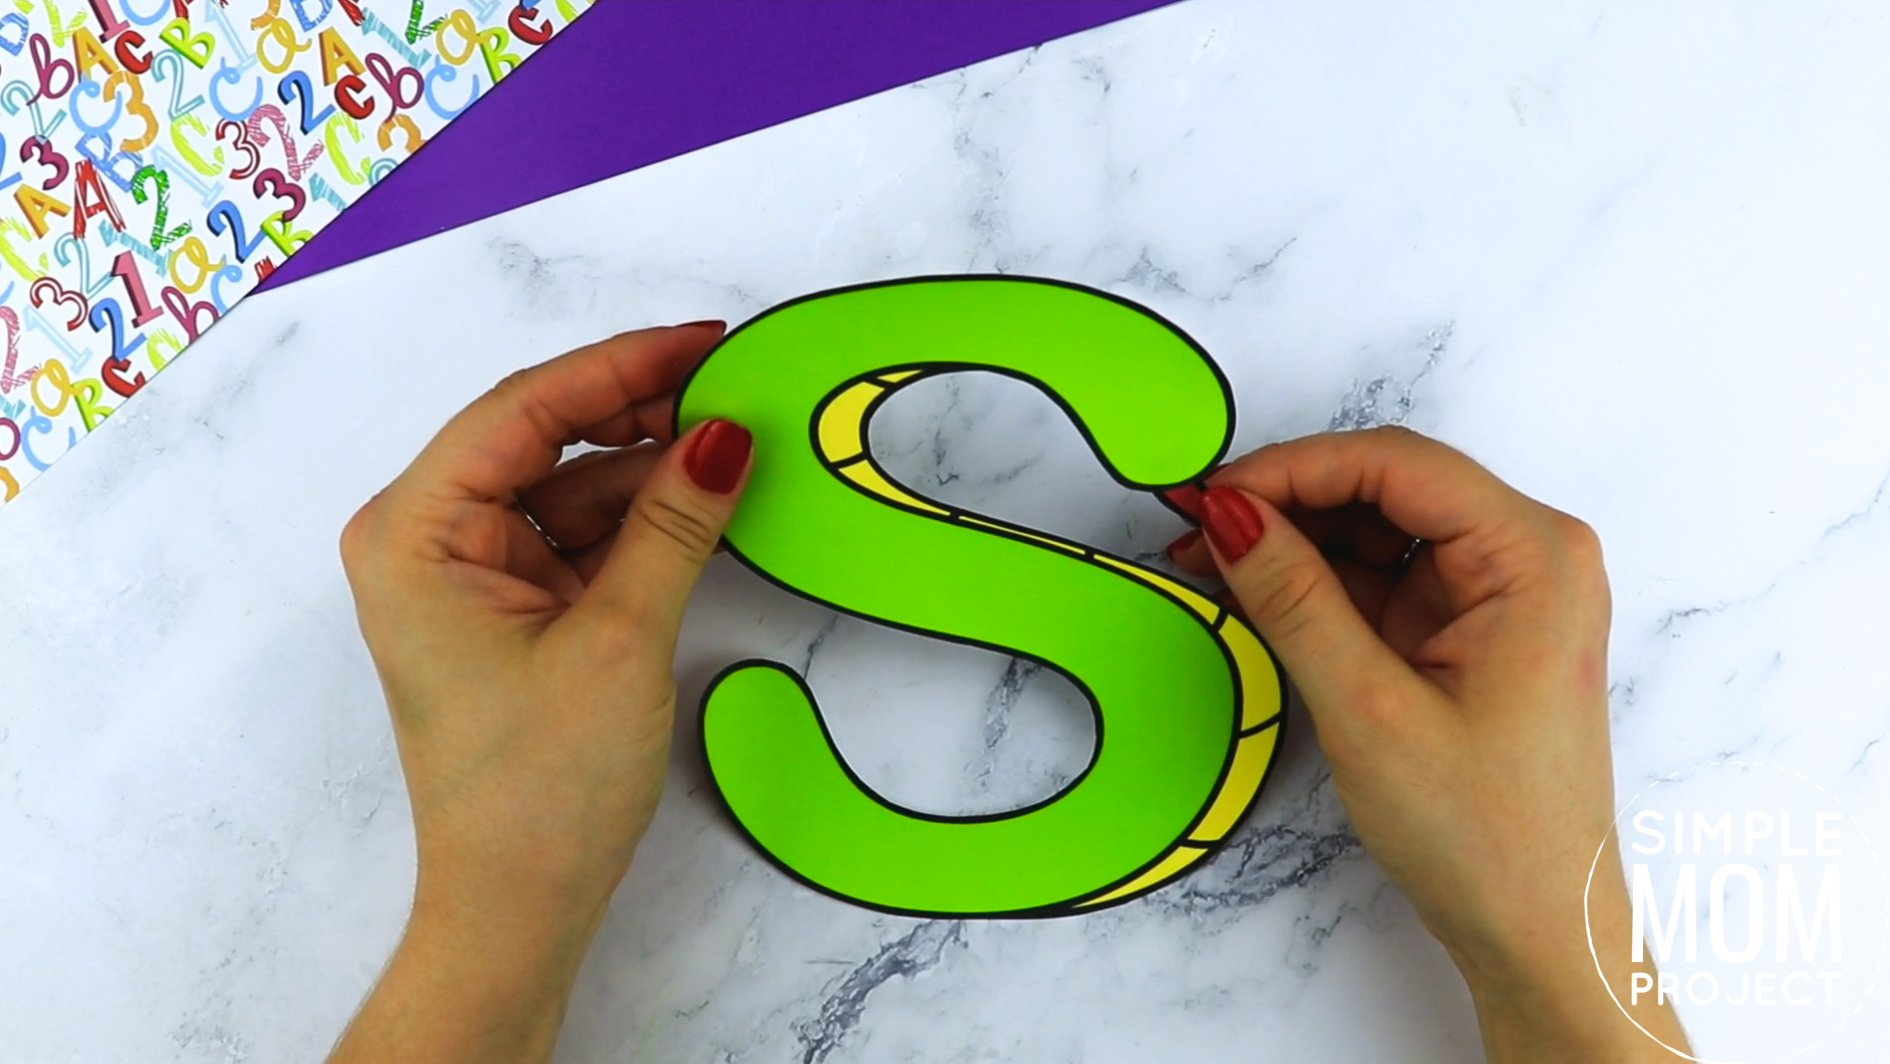 S is for Snake Printable Craft Snake Letter S Craft for Kids, preschoolers, toddlers and kindergartners